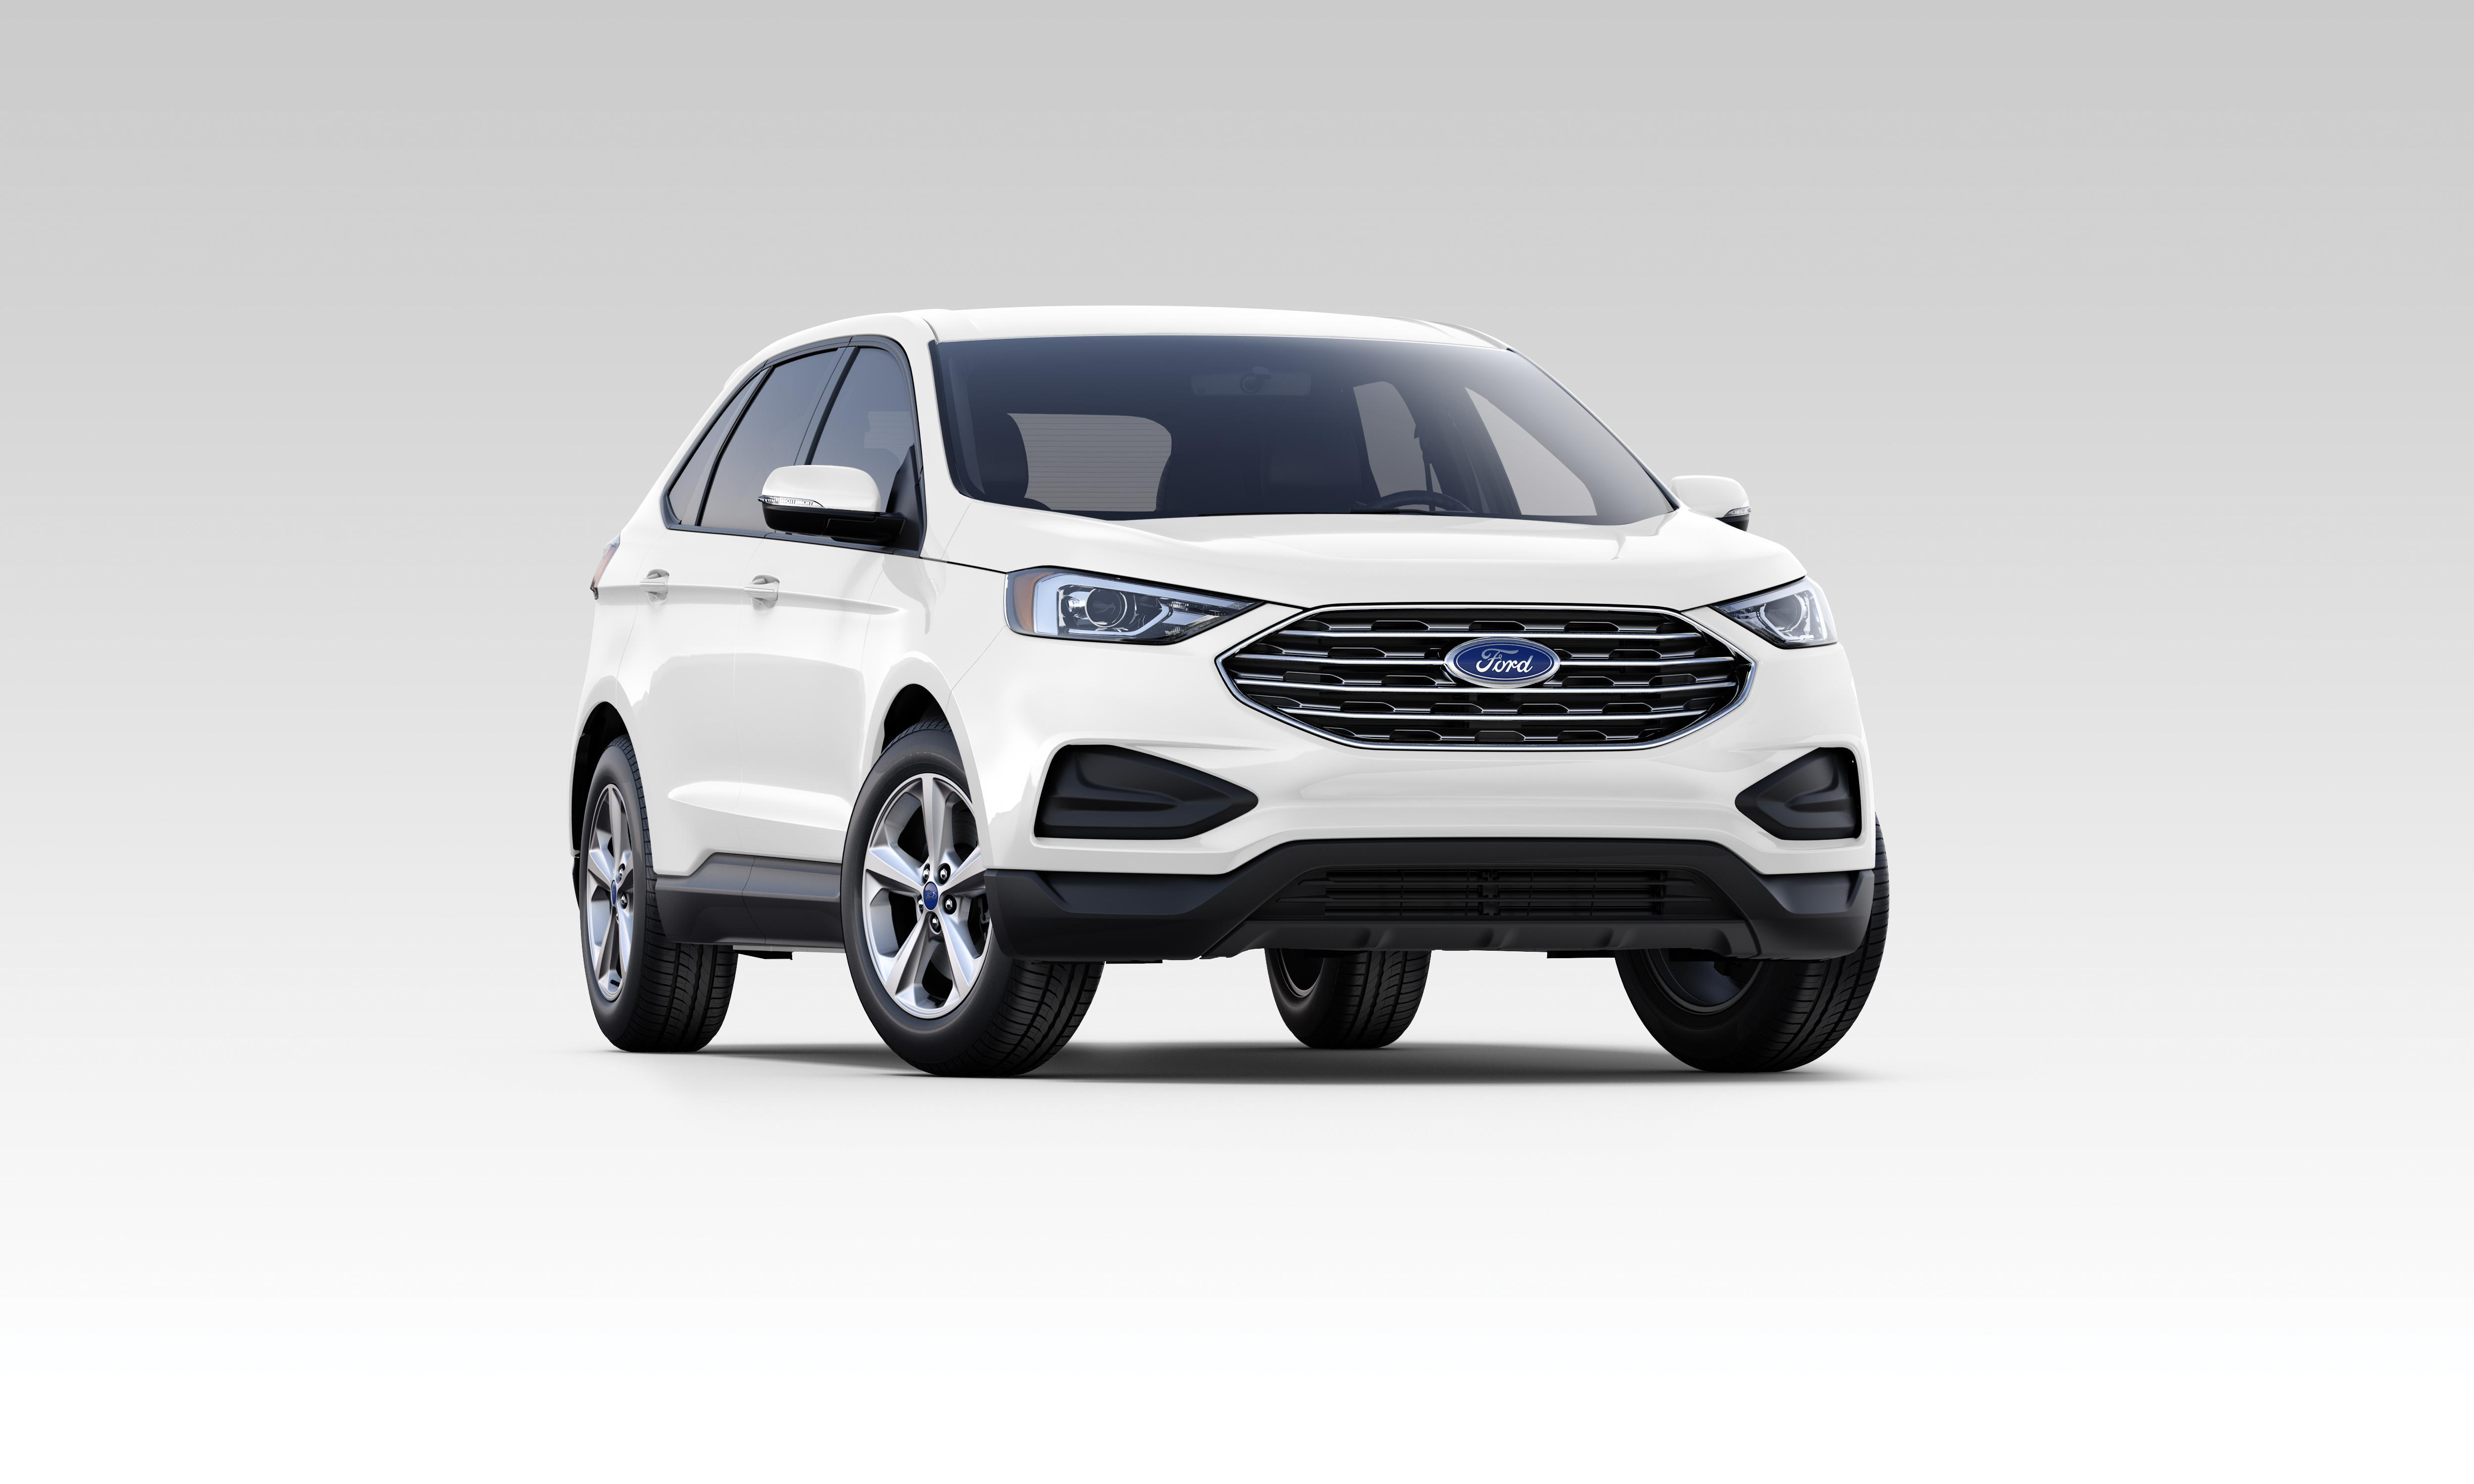 2019 Ford Edge at Lincoln Heights Ford